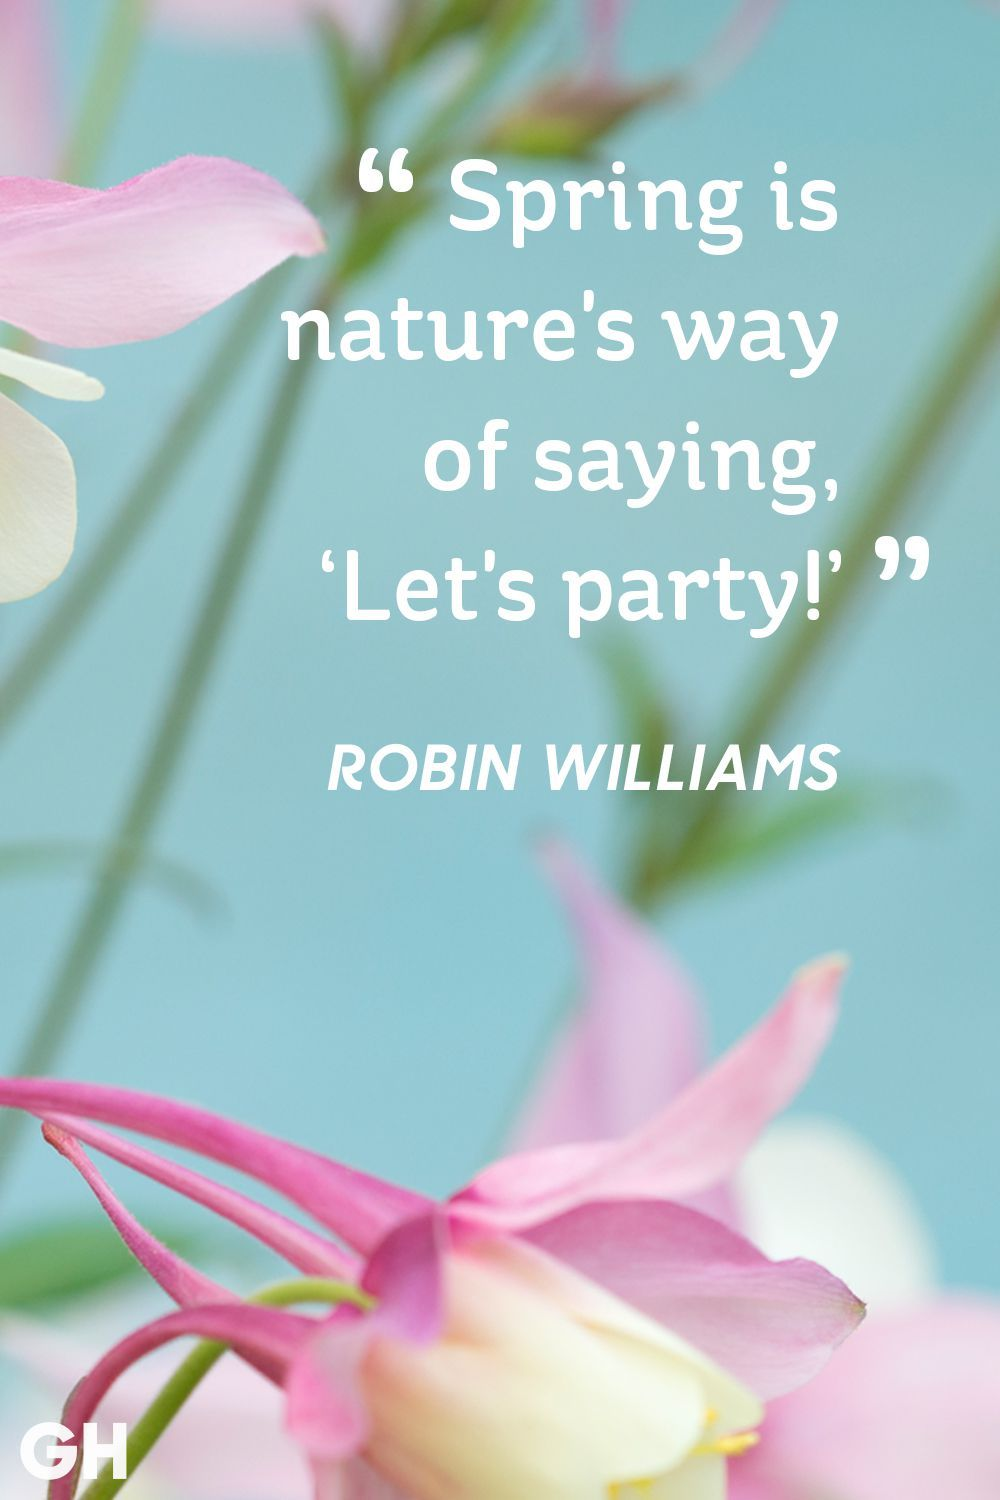 Get In The Springtime Spirit With These Uplifting Quotes Spring Quotes Robin Williams Quotes Uplifting Quotes